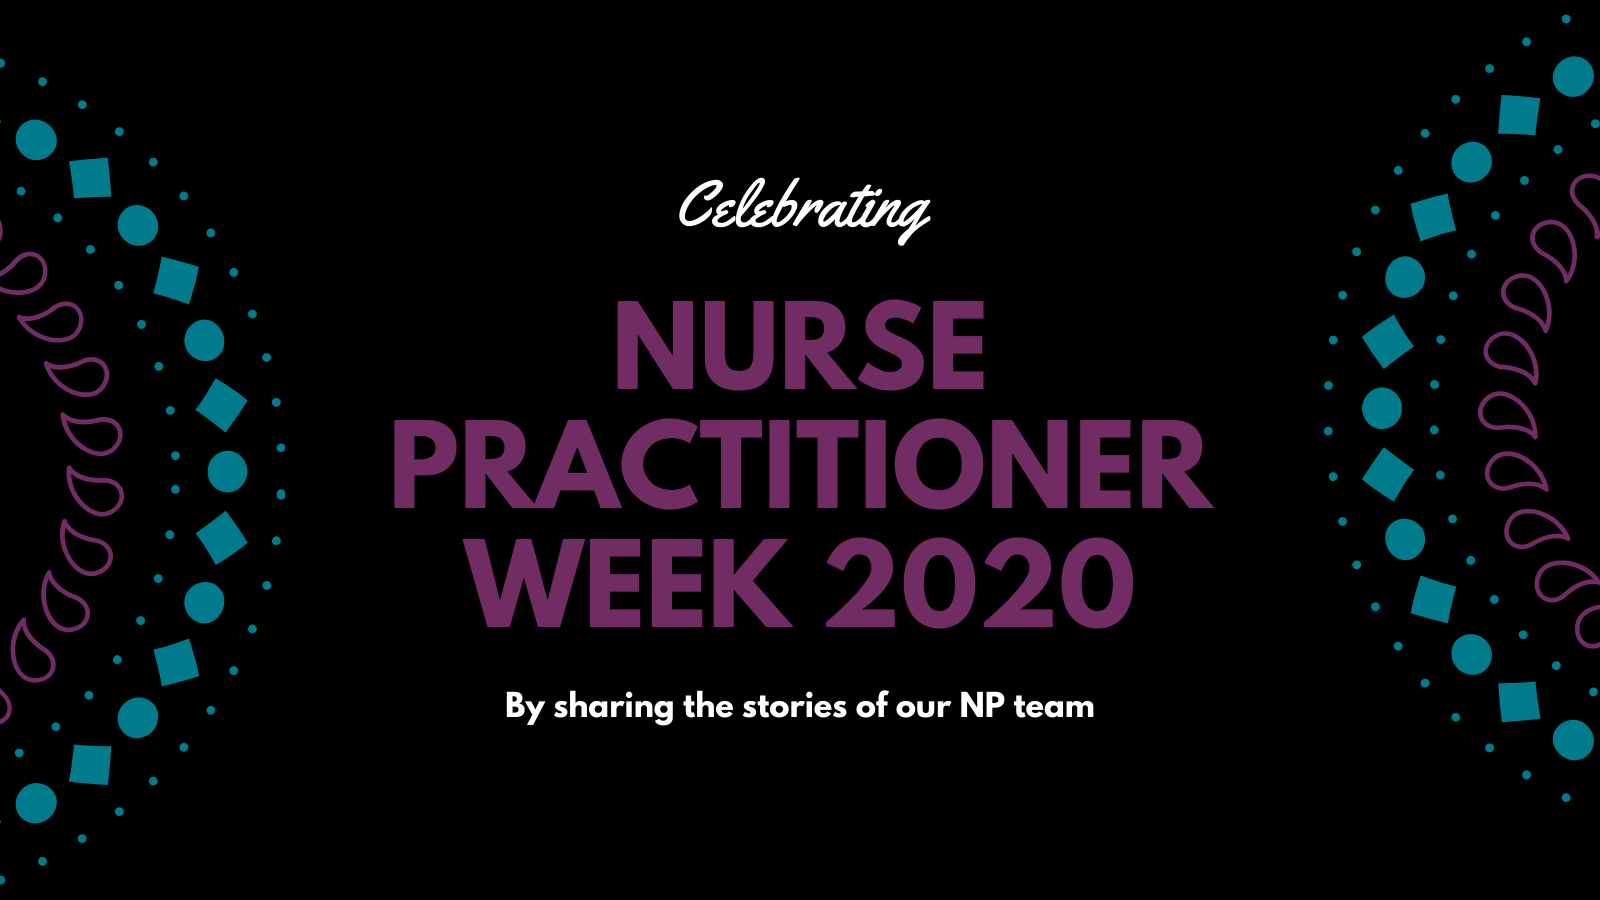 Celebrating nurse practitioner week 2020 by sharing the stories of our mental health nurse practitioners